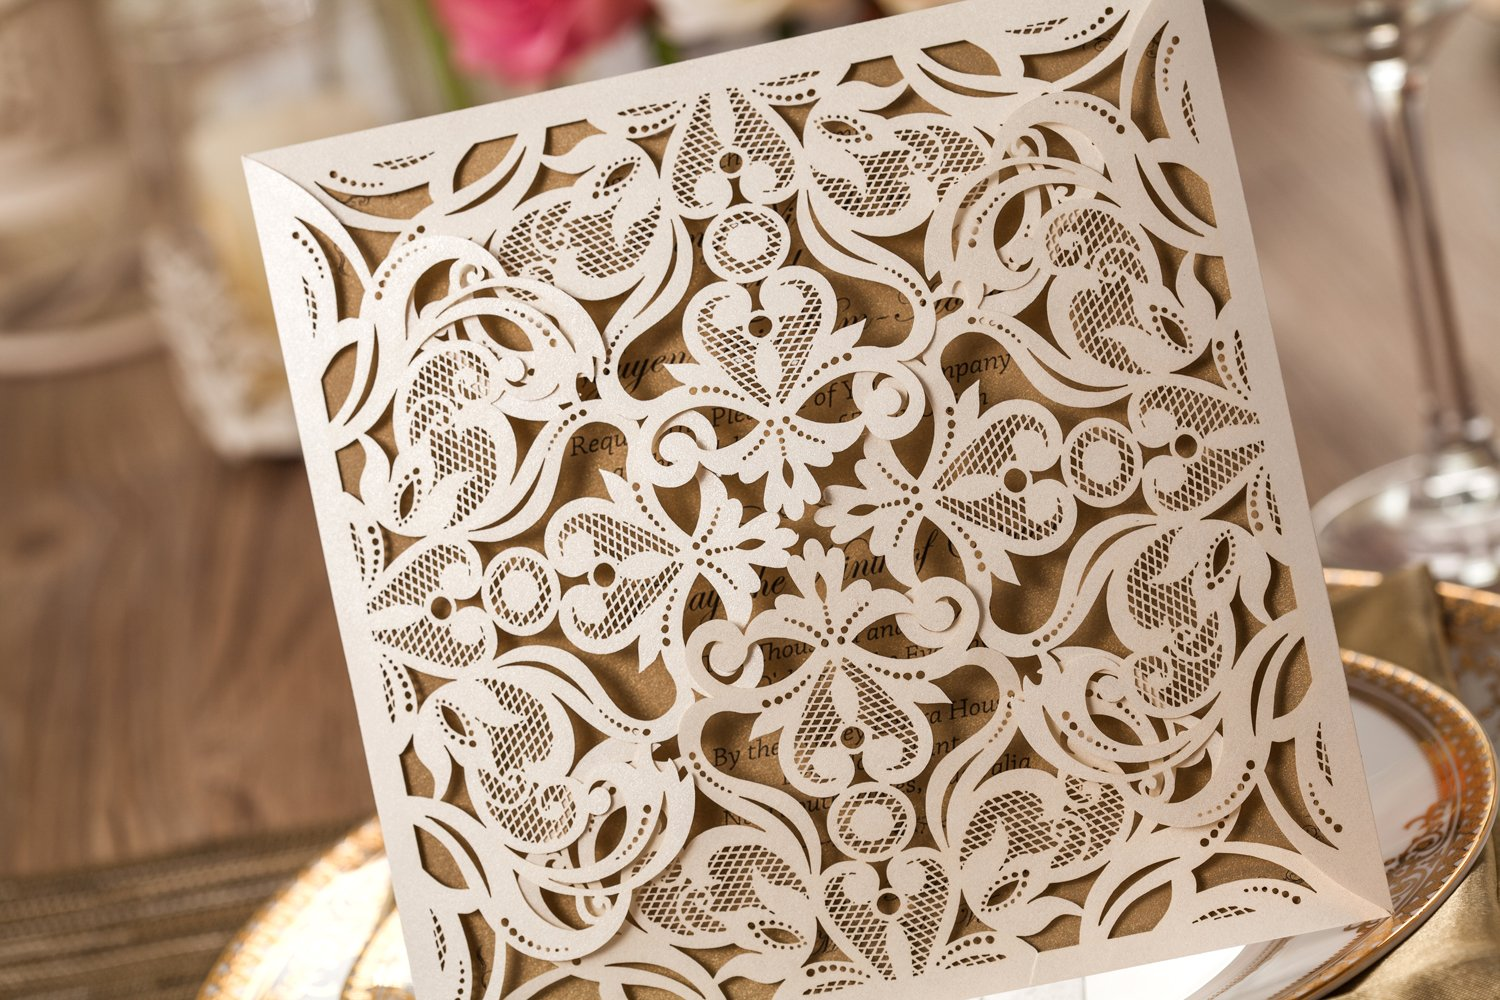 Amazon.com: Wishmade 50x Beige Laser Cut Square Wedding Invitations Cards  With Lace Flowers Engagement Birthday Bridal Shower Baby Shower Graduation  ...